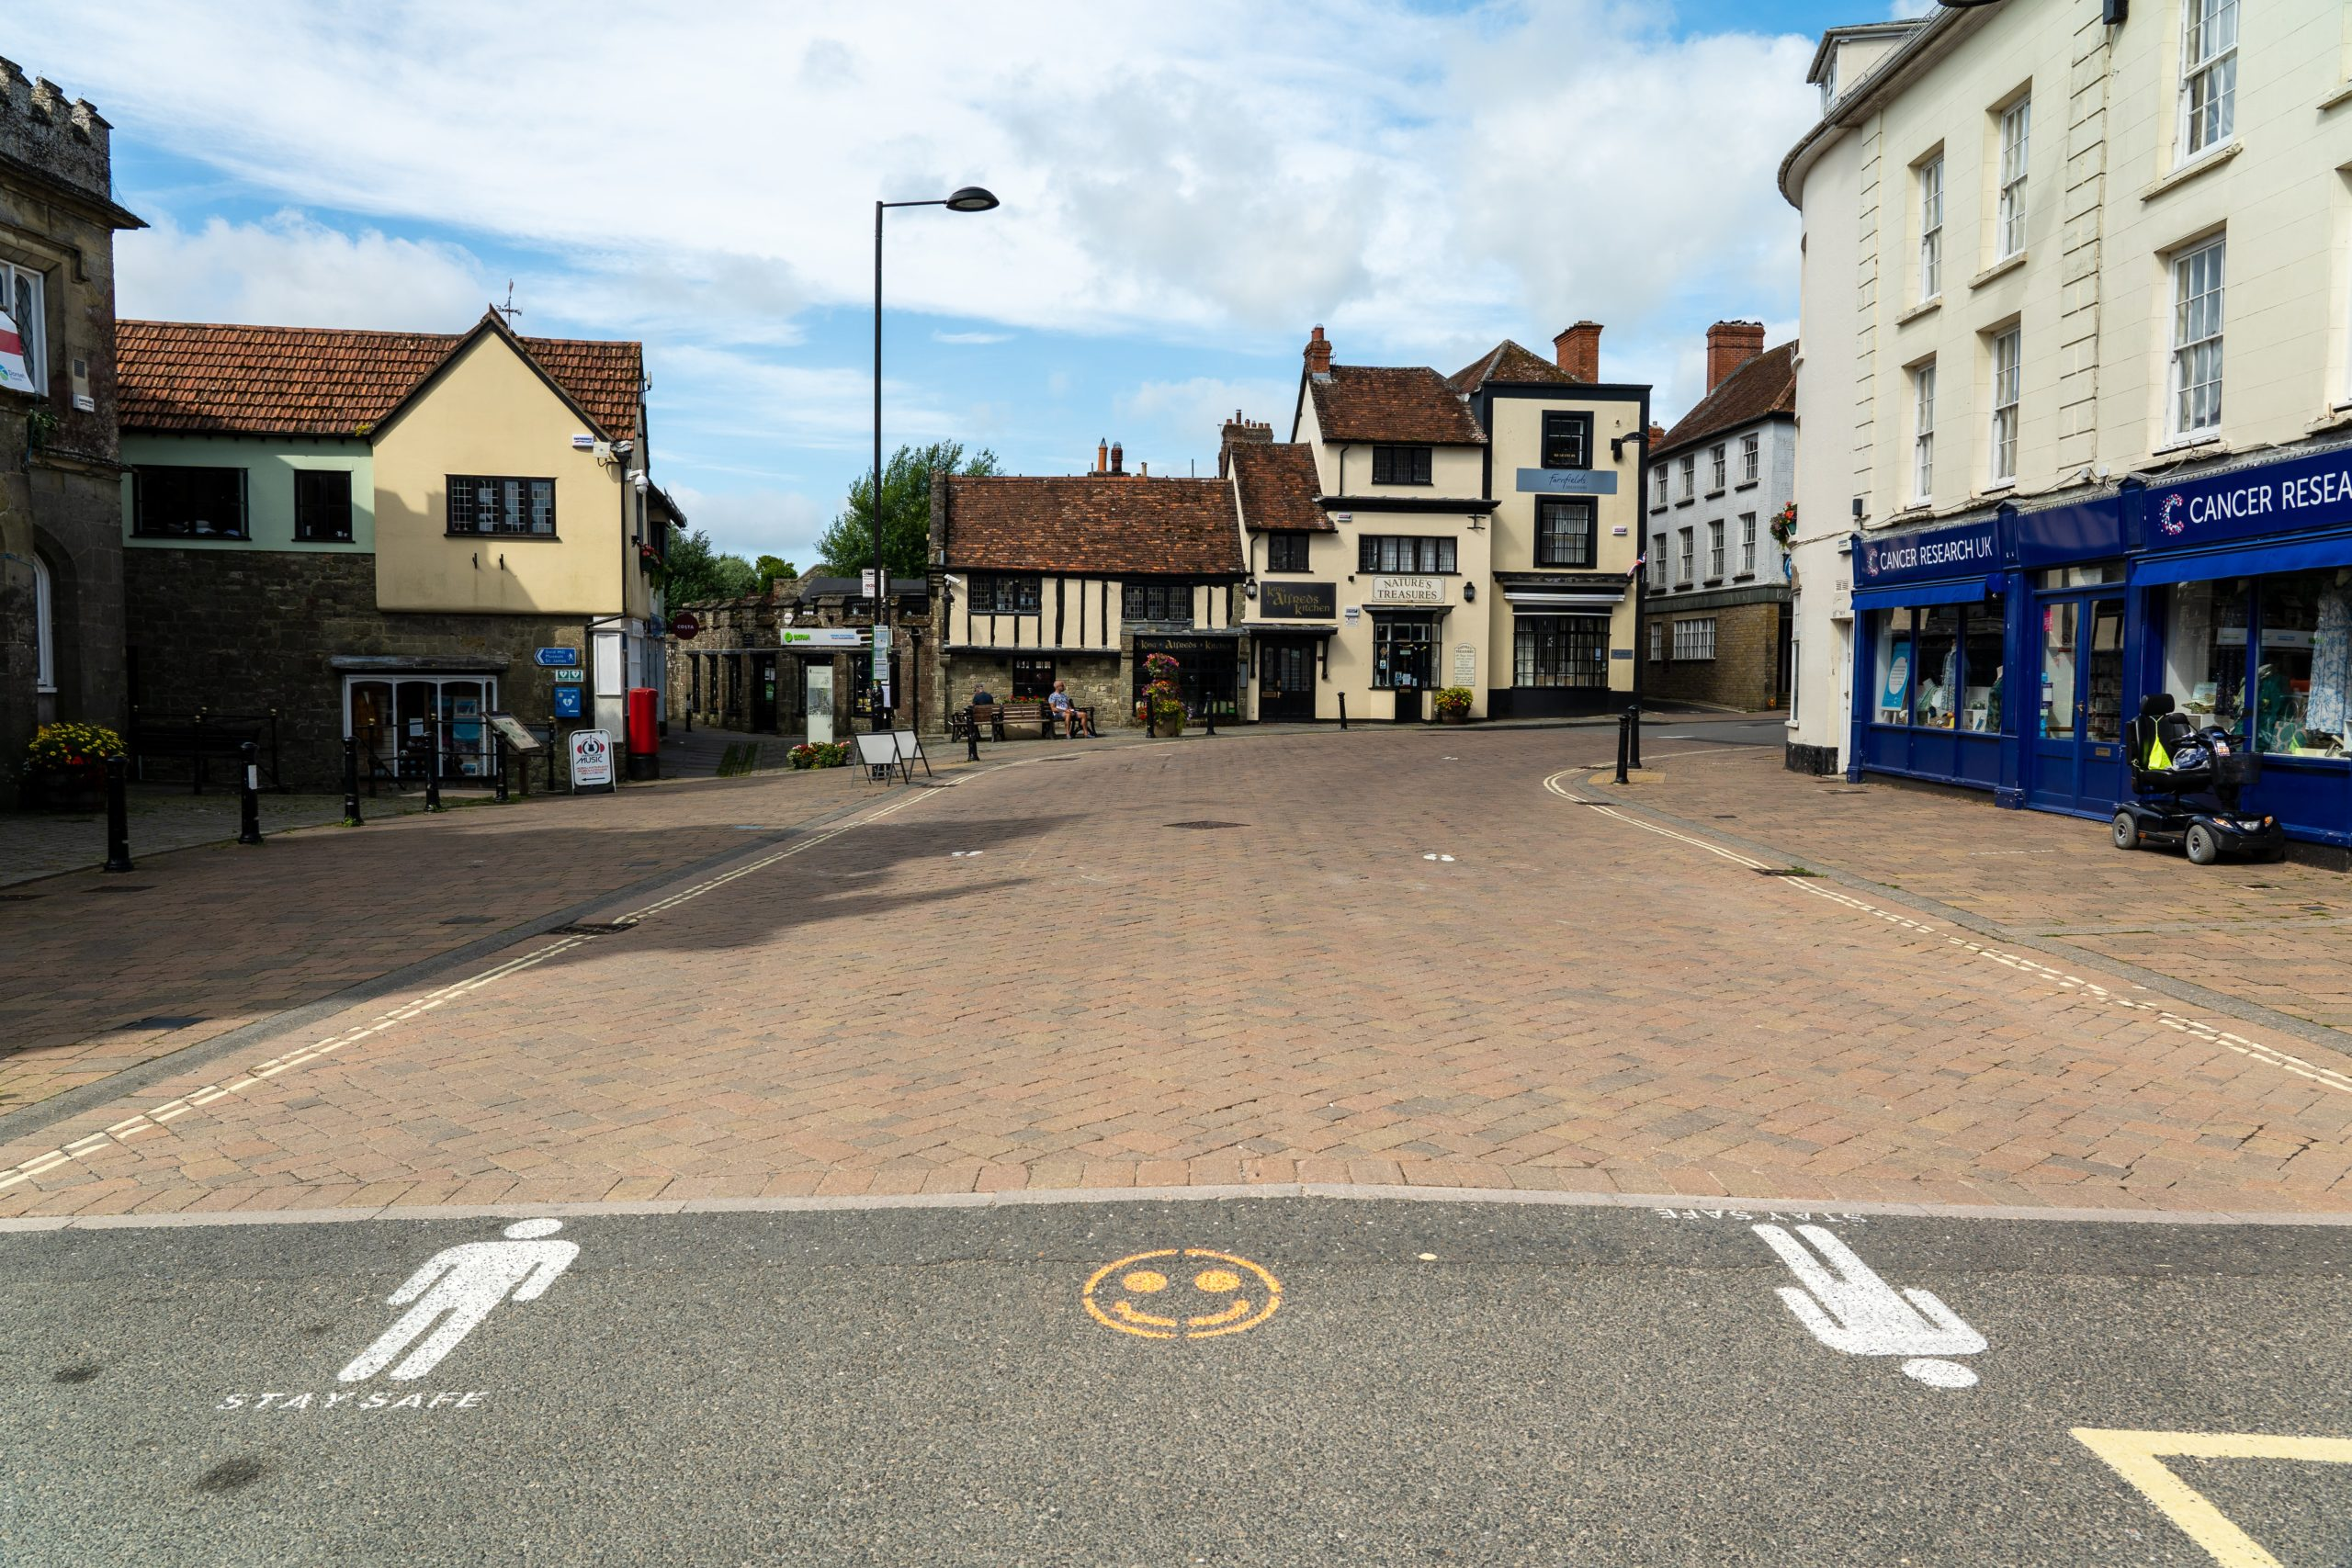 High Street in Hertfordshire with social distancing markers painted on the floor